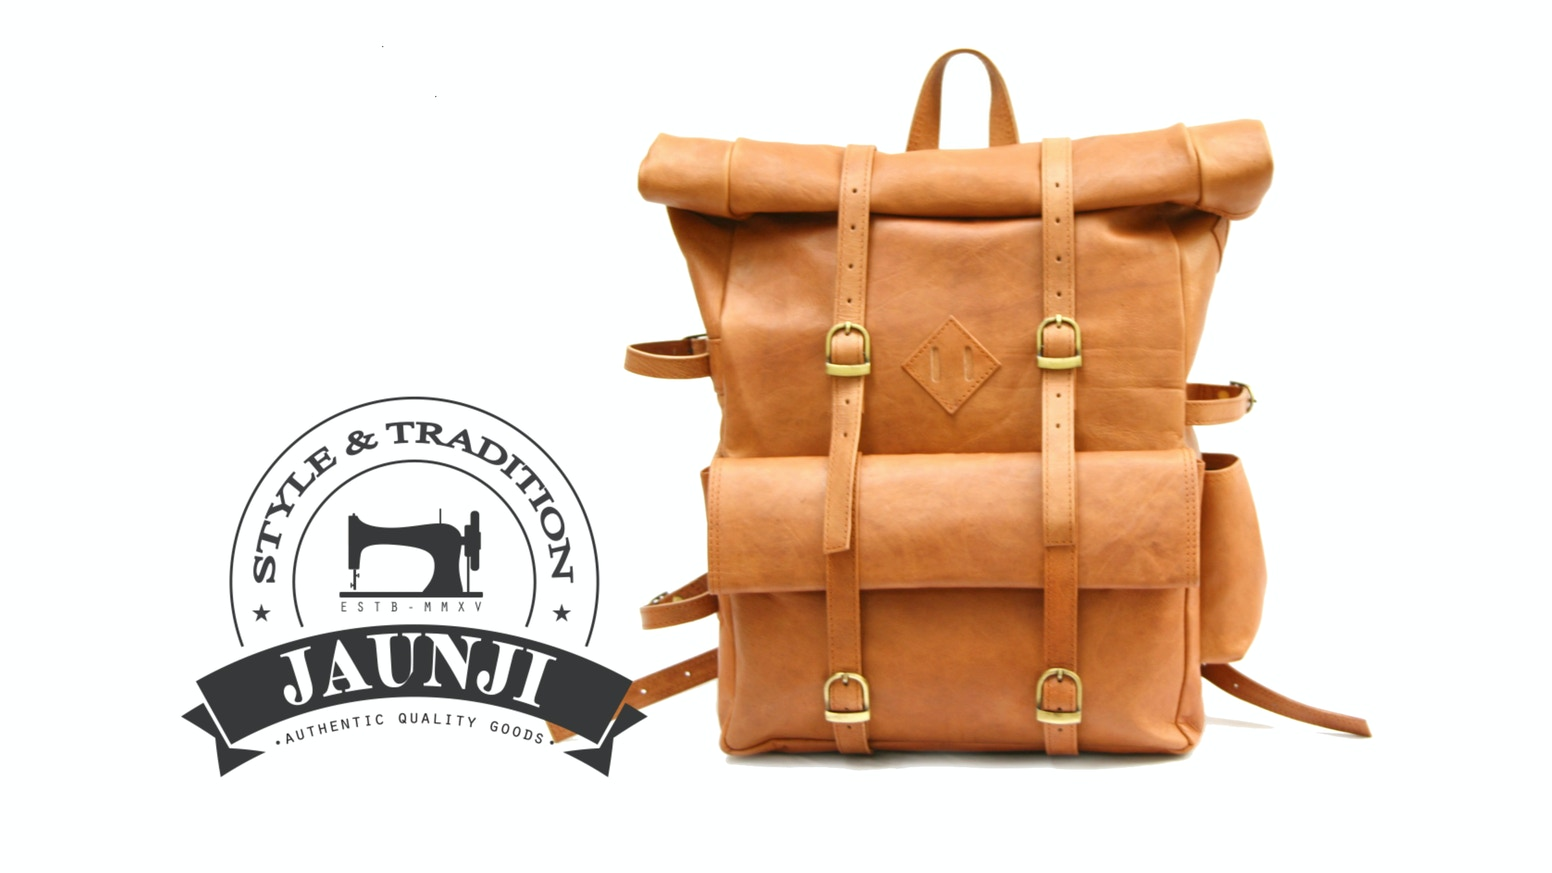 Natural Veg tanned leather, hand cut & sewn to create an authentic quality roll top backpack - Timeless design and honest construction